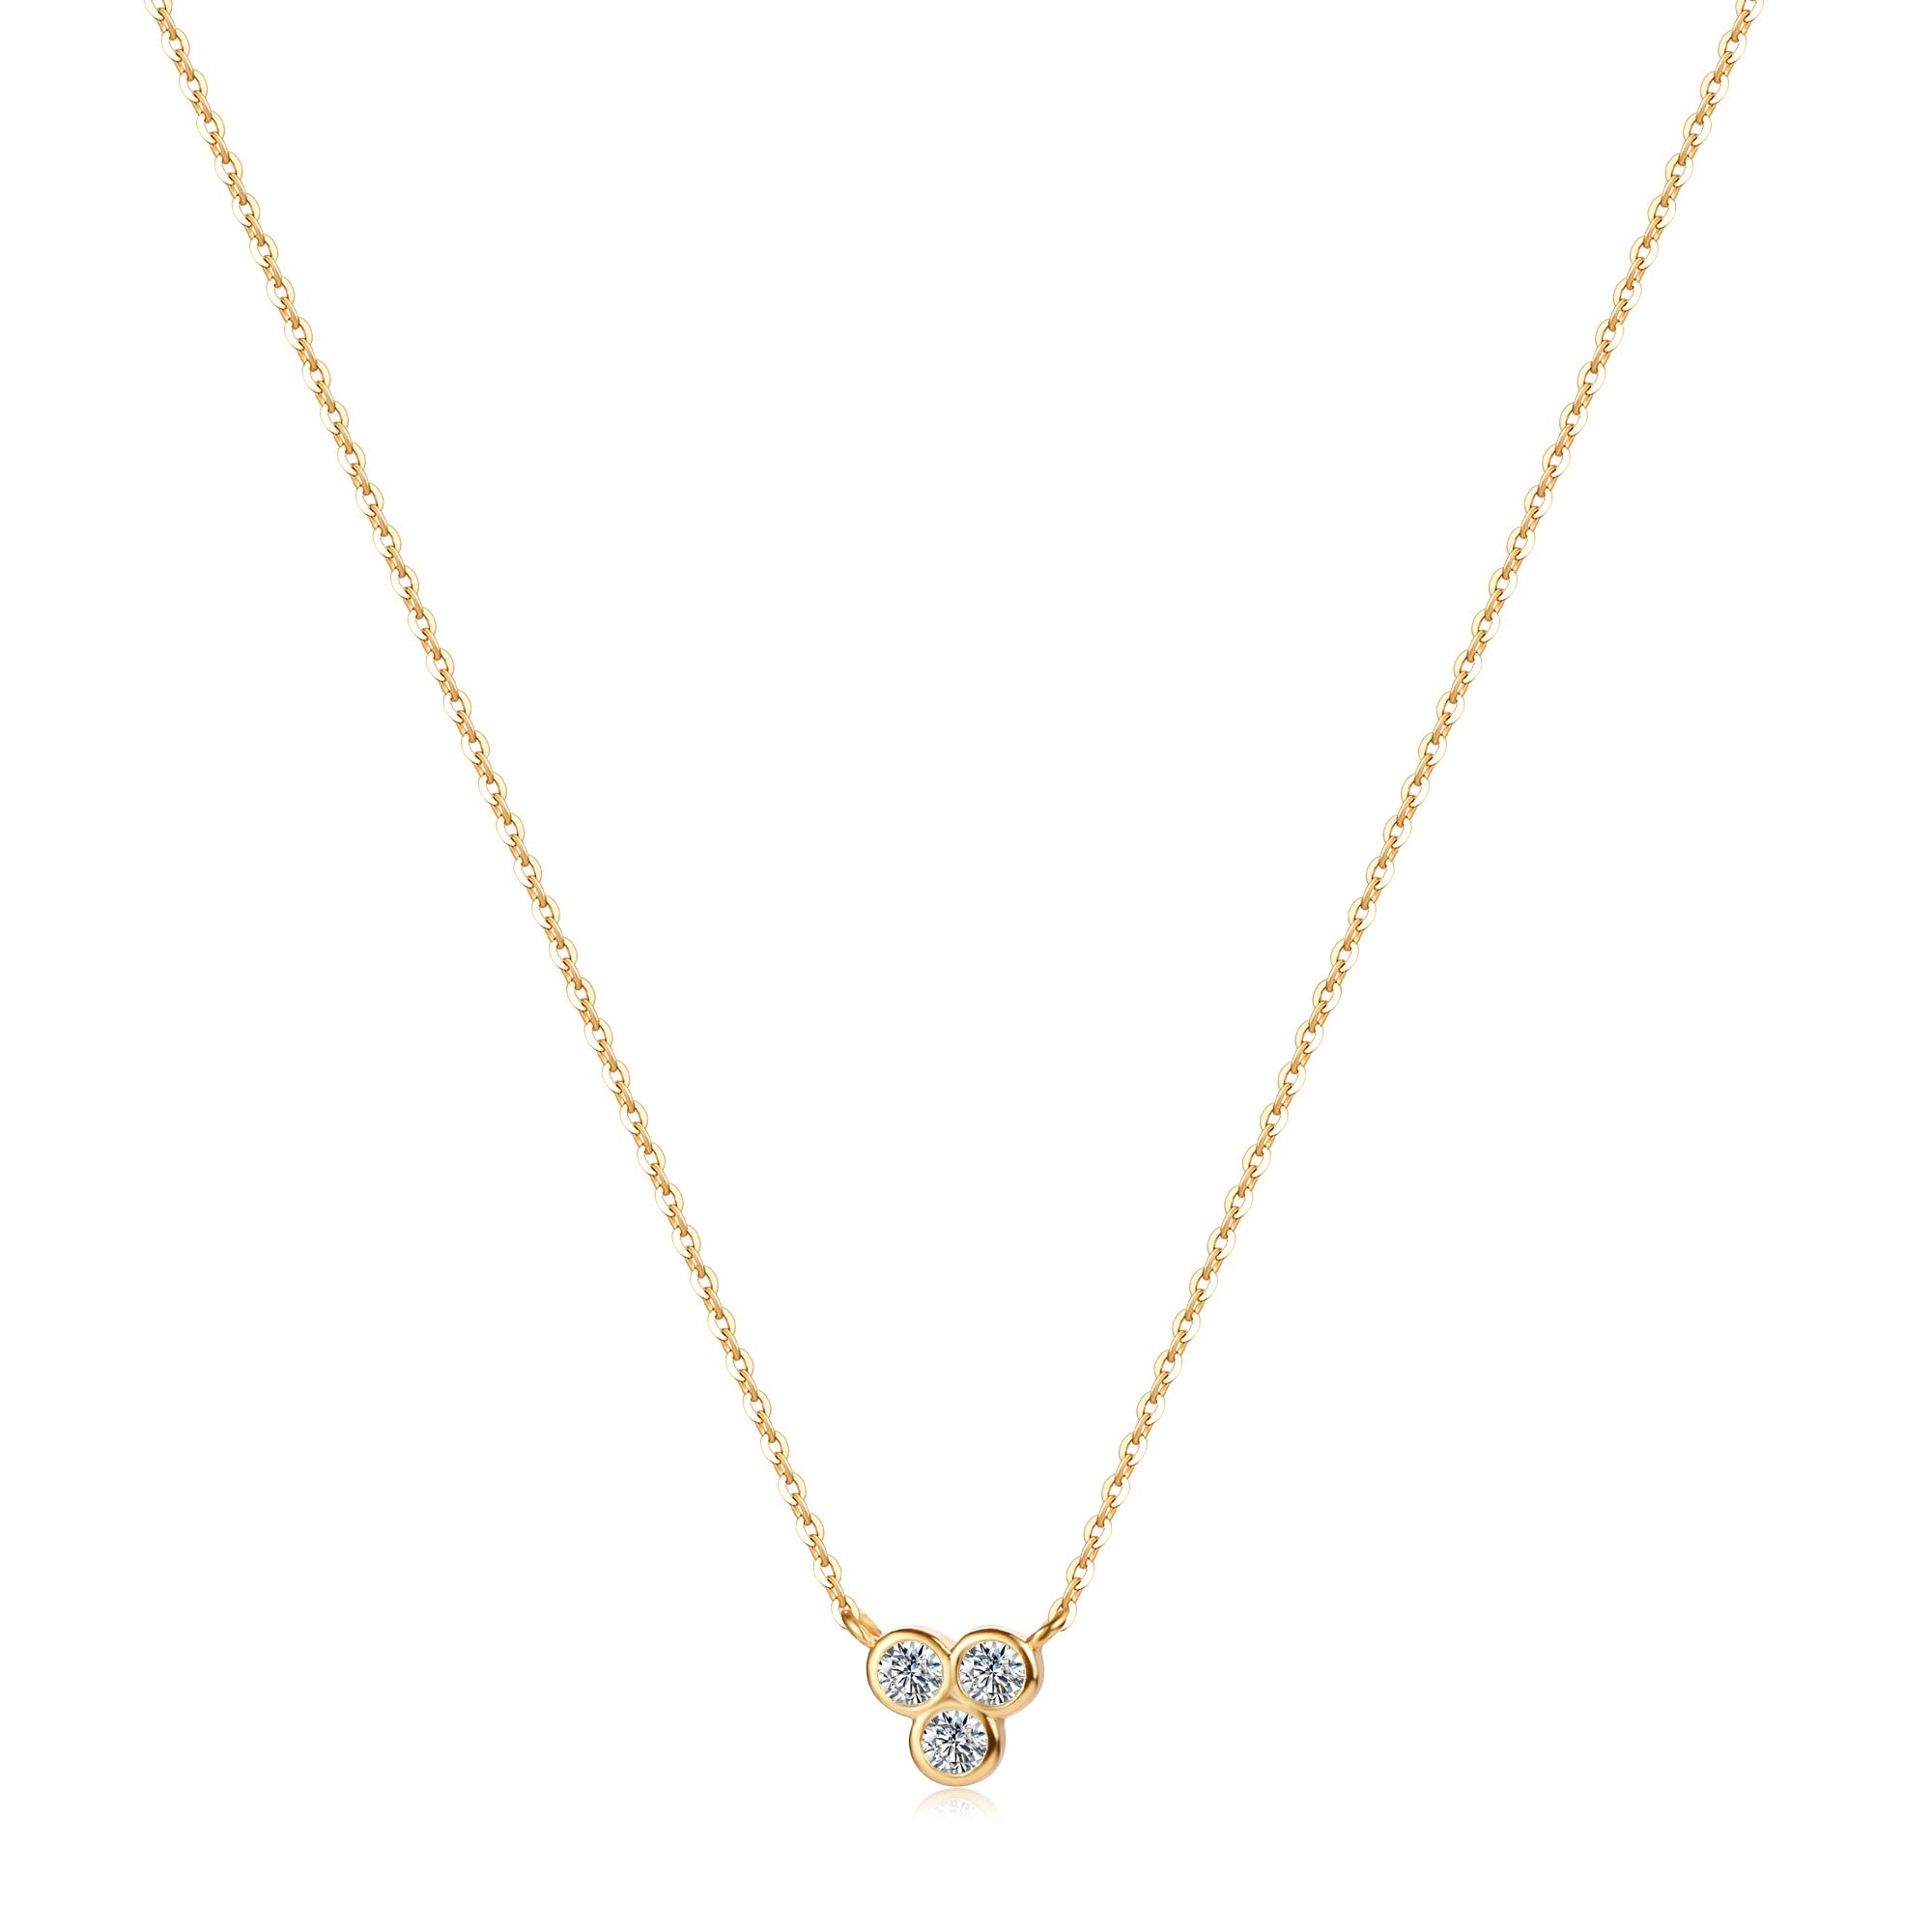 Mevecco Gold Dainty Necklace 14K Gold Plated Cute Horizontal Hammered Cubic Zirconia Evil Eye Heart Necklace for Women